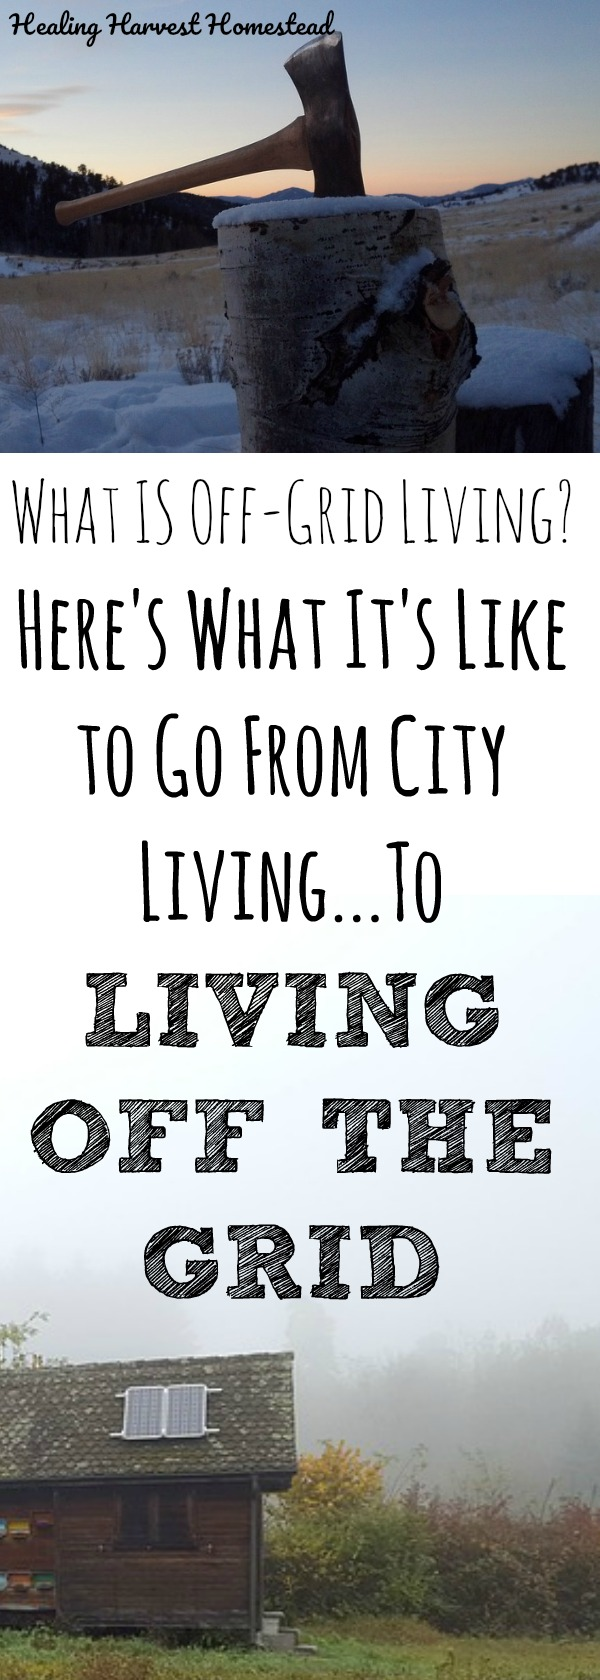 "What is it REALLY like to live off grid? And what, actually does living ""off-grid"" mean? Find out about the challenges and joys of moving from city living to being off the grid---- #OffGrid #LivingOffGrid"